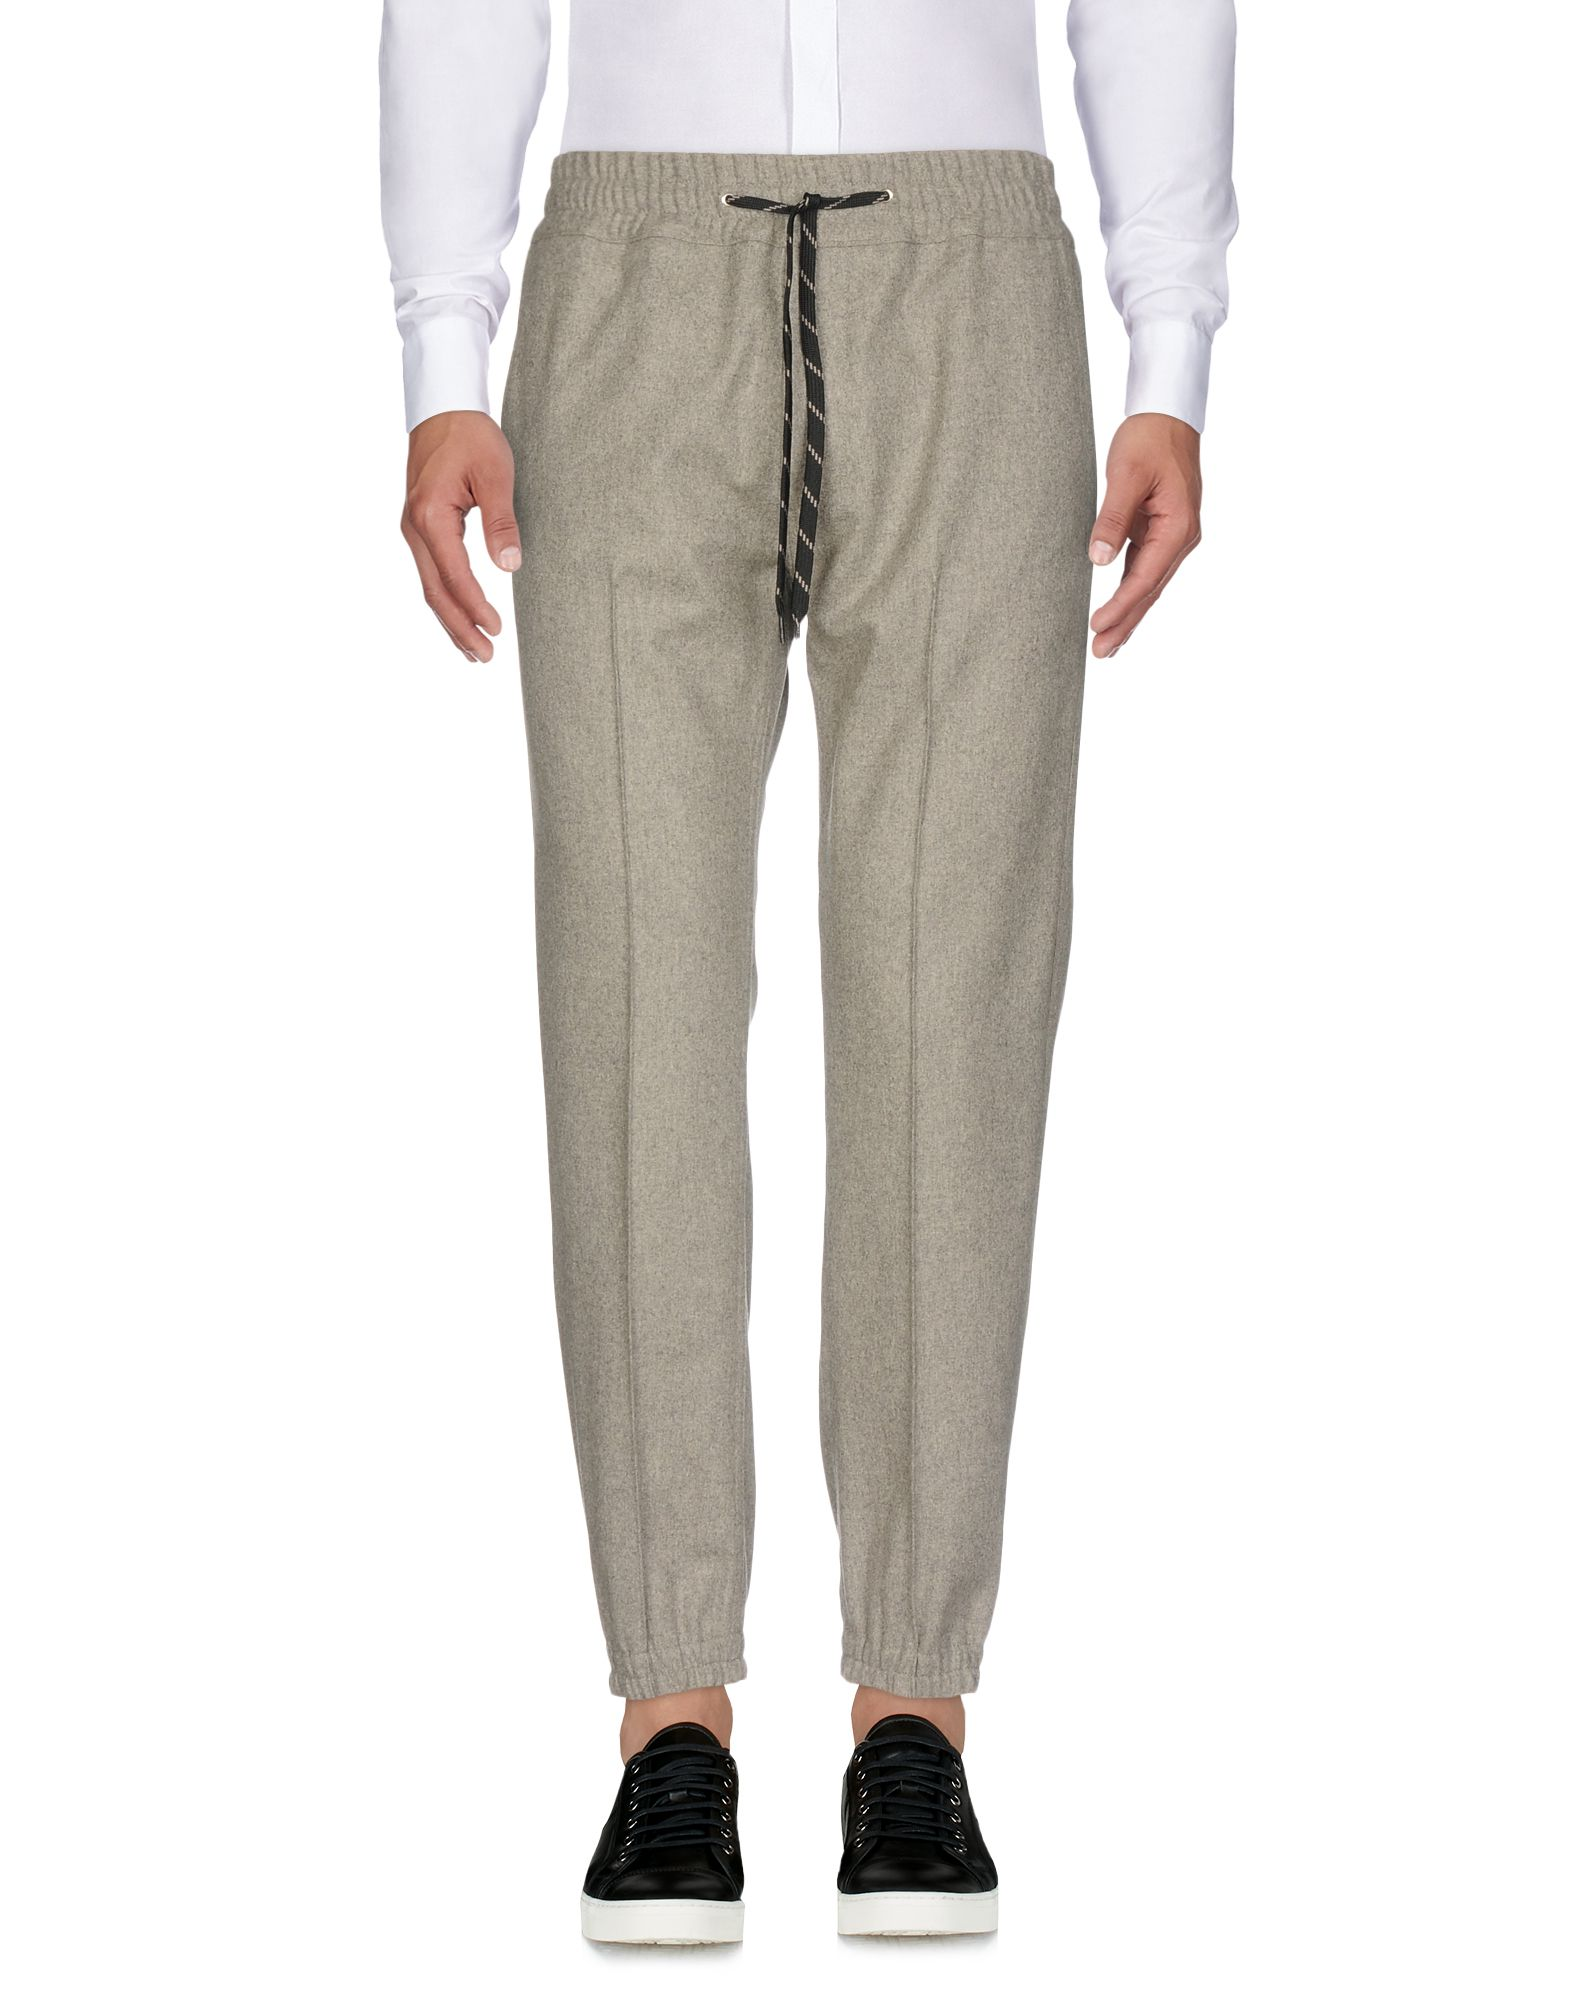 Pantalone Marc Jacobs Donna - Acquista online su